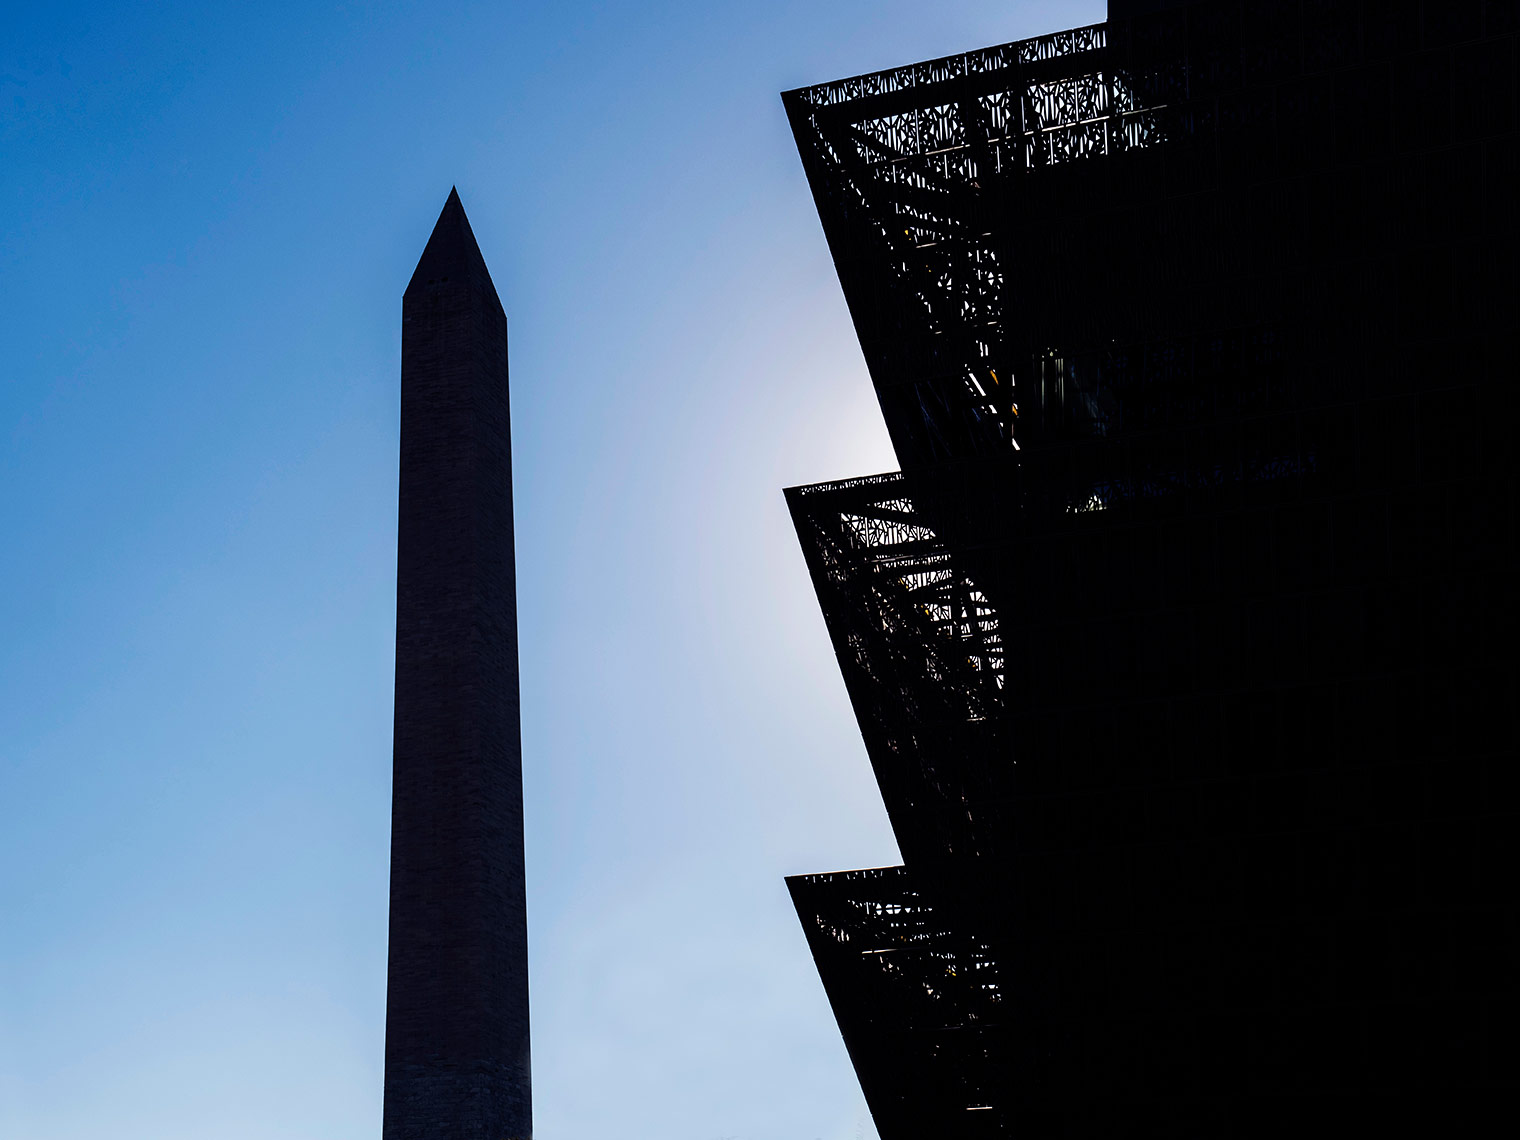 National Museum of African American History and Culture - Designed by David Adjaye